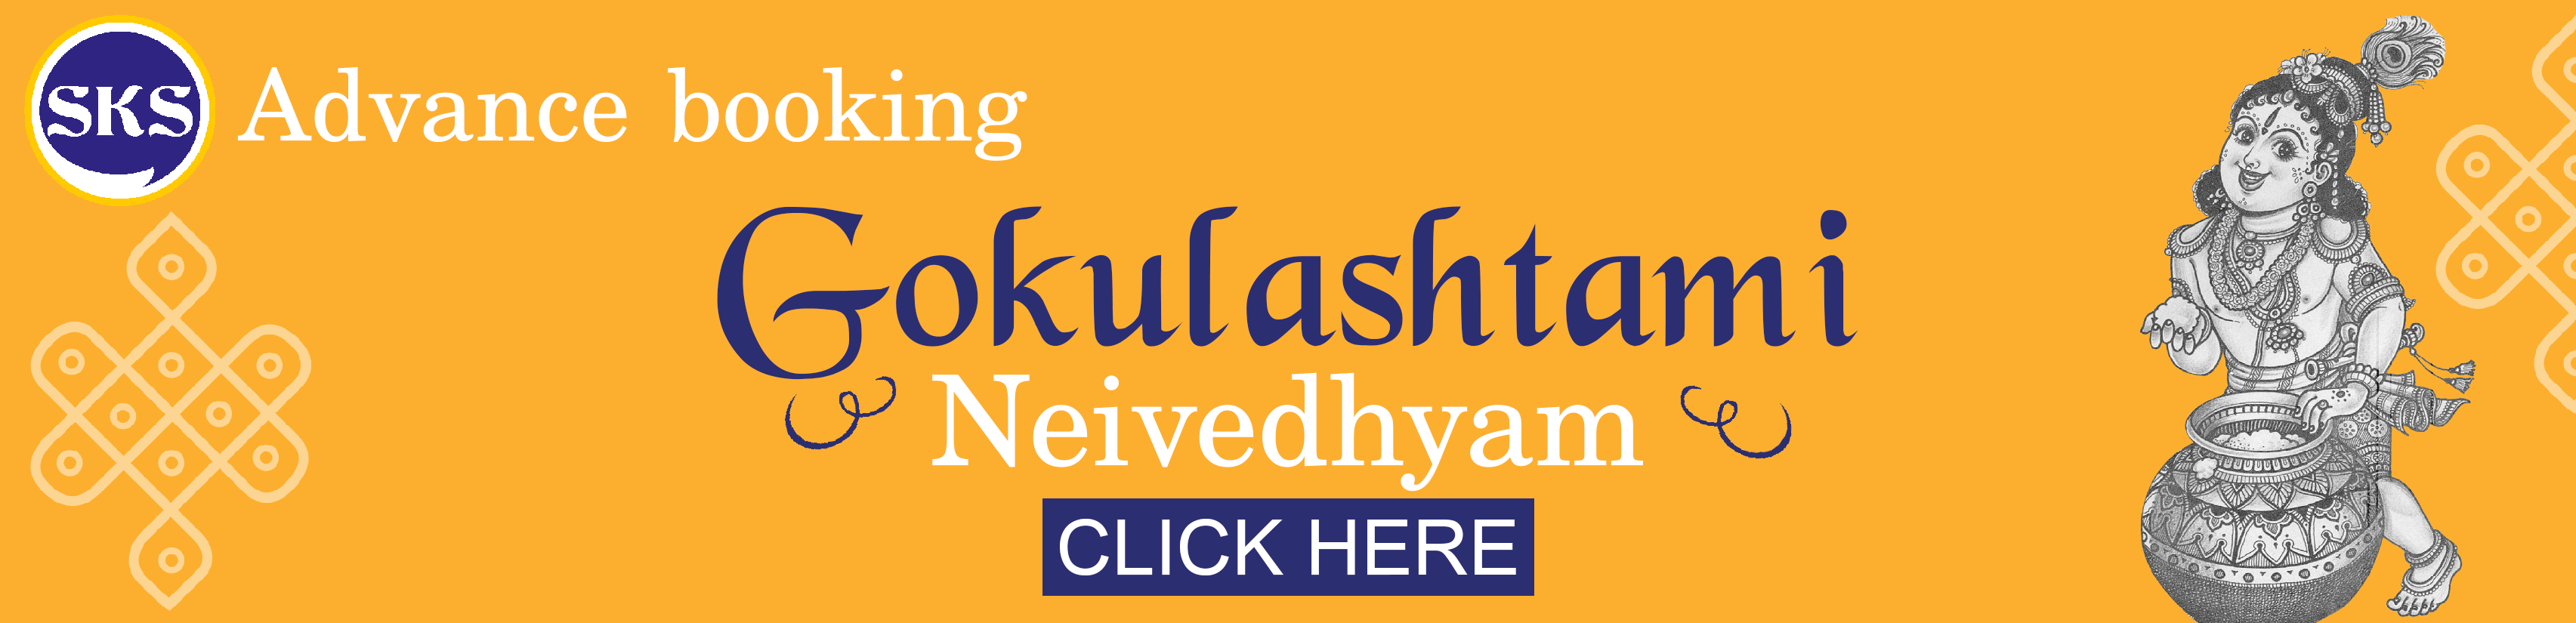 Advance Booking for Gokulashtami Neivedhyam